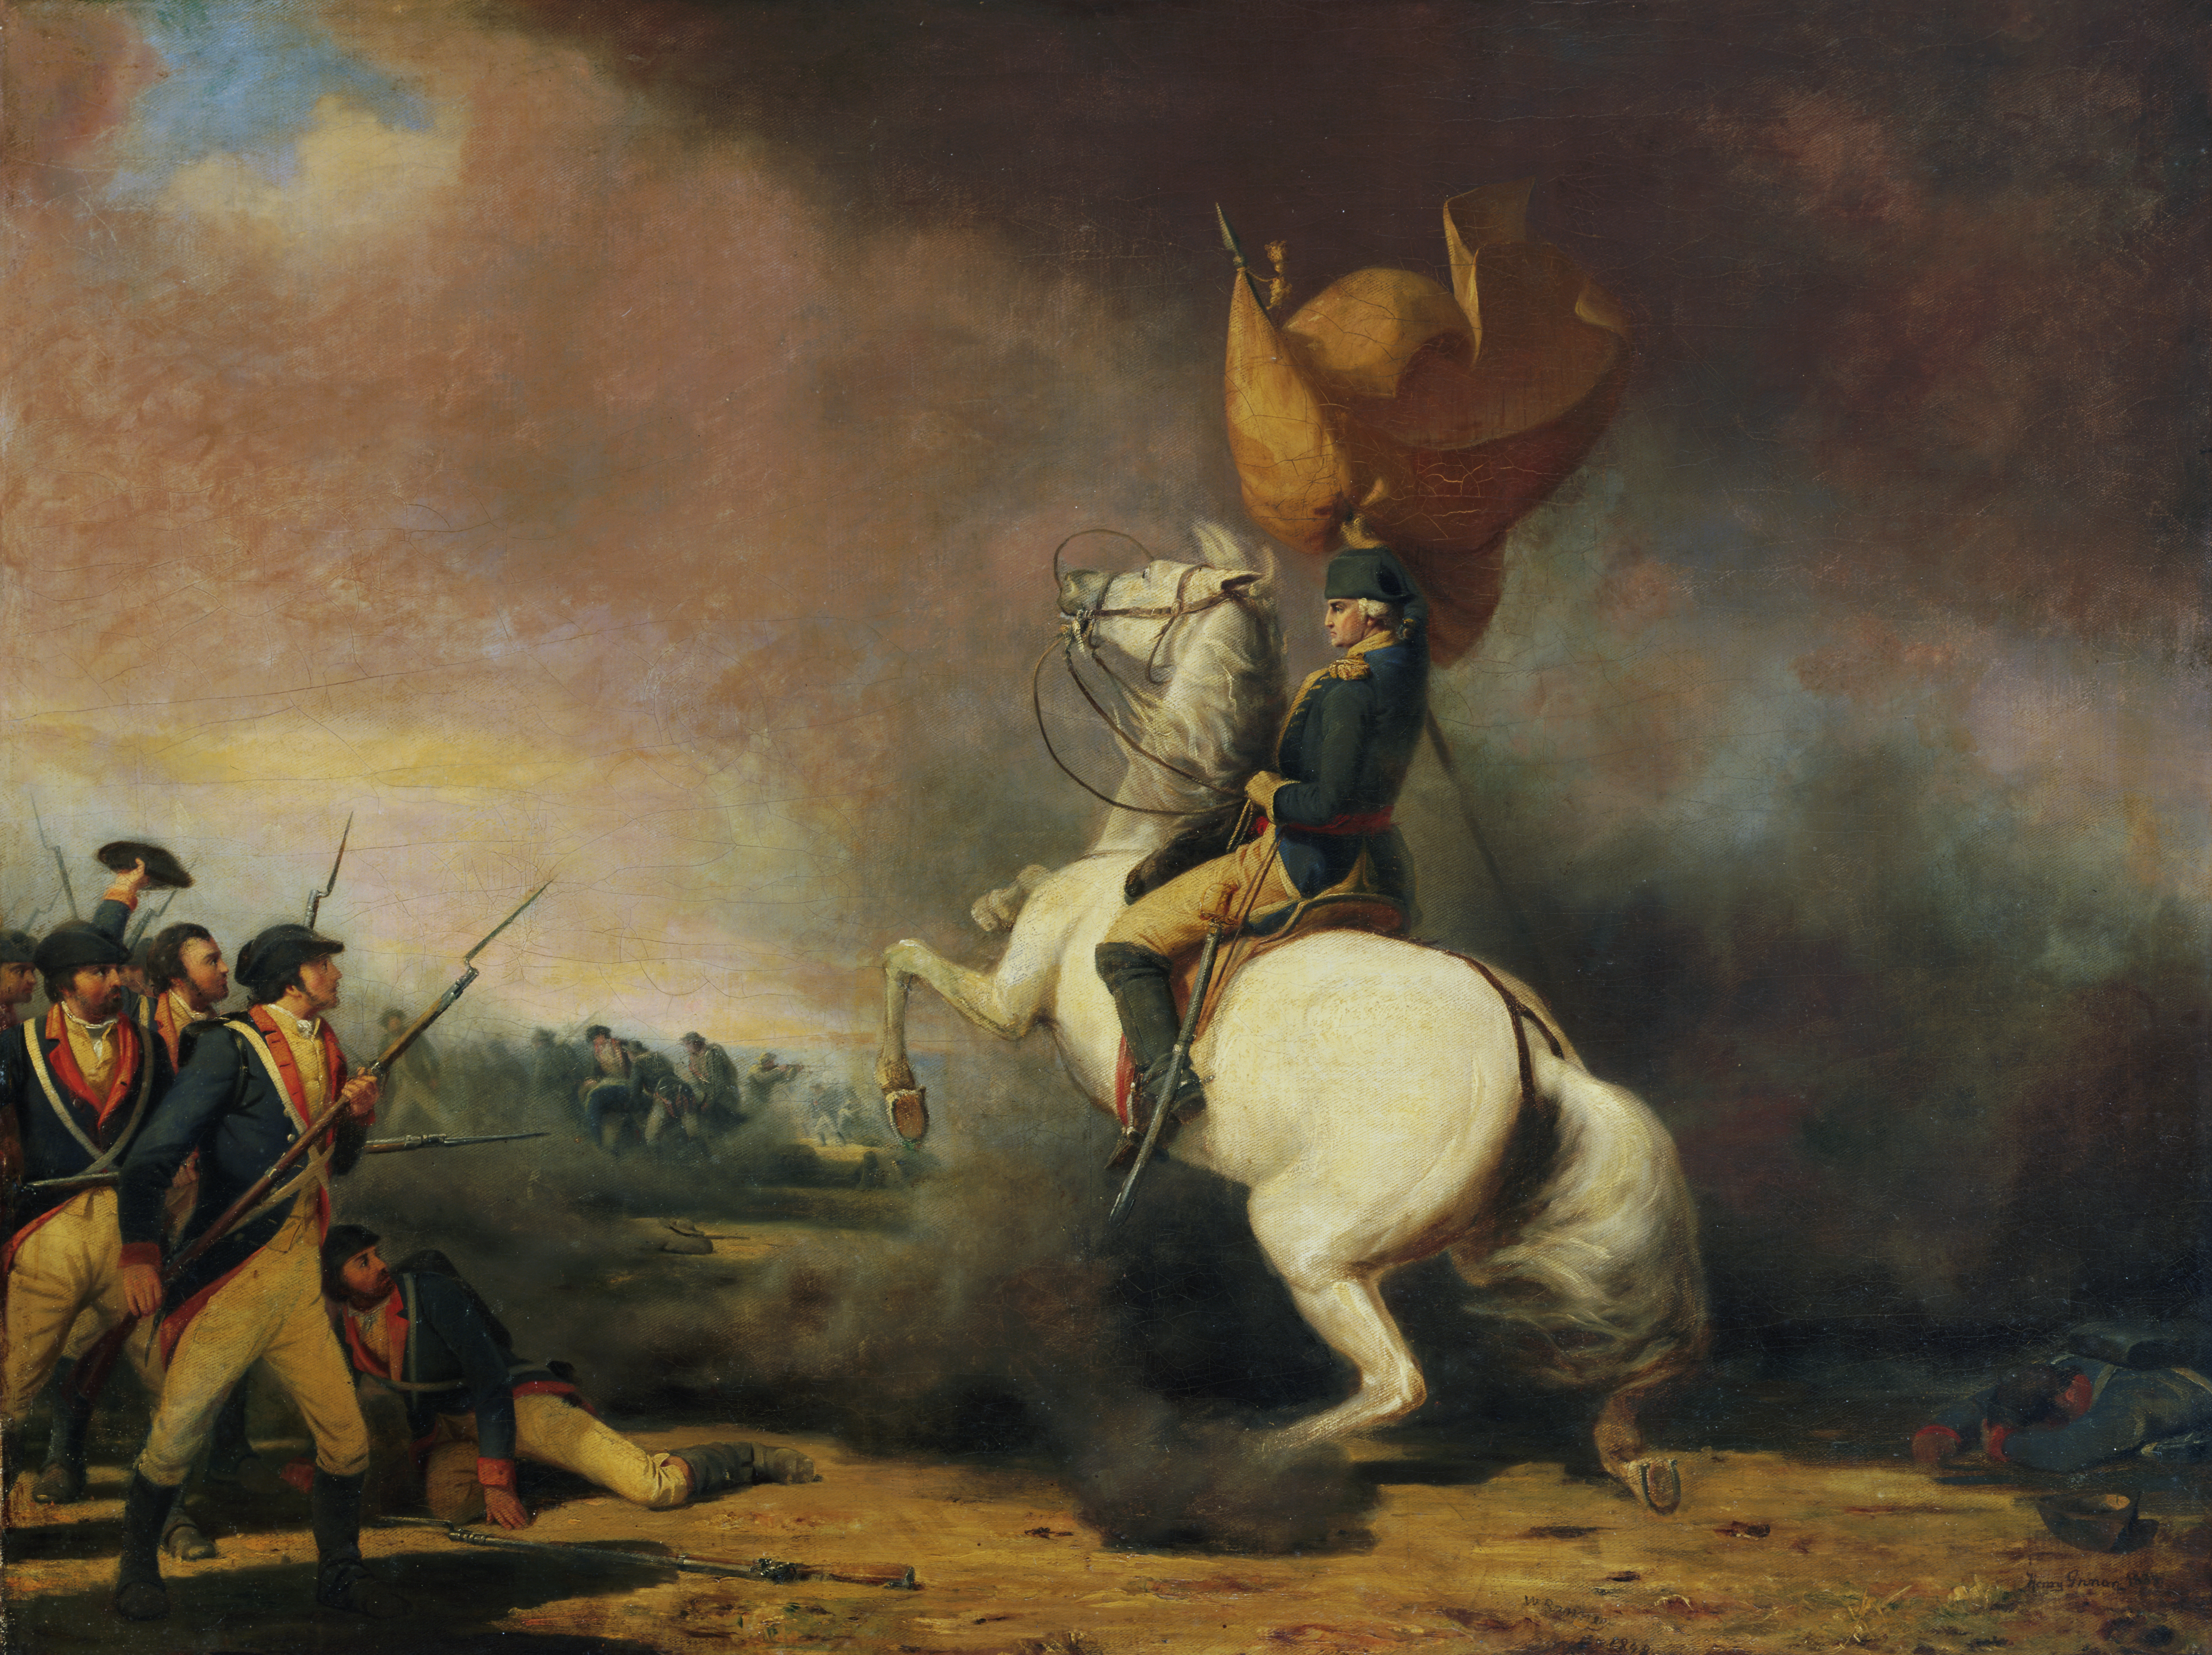 General George Washington rallying his troops at the Battle of Princeton. Oil on canvas painting by William Ranney, 1848. In the collections of the Princeton University Art Museum located in Princeton, New Jersey.